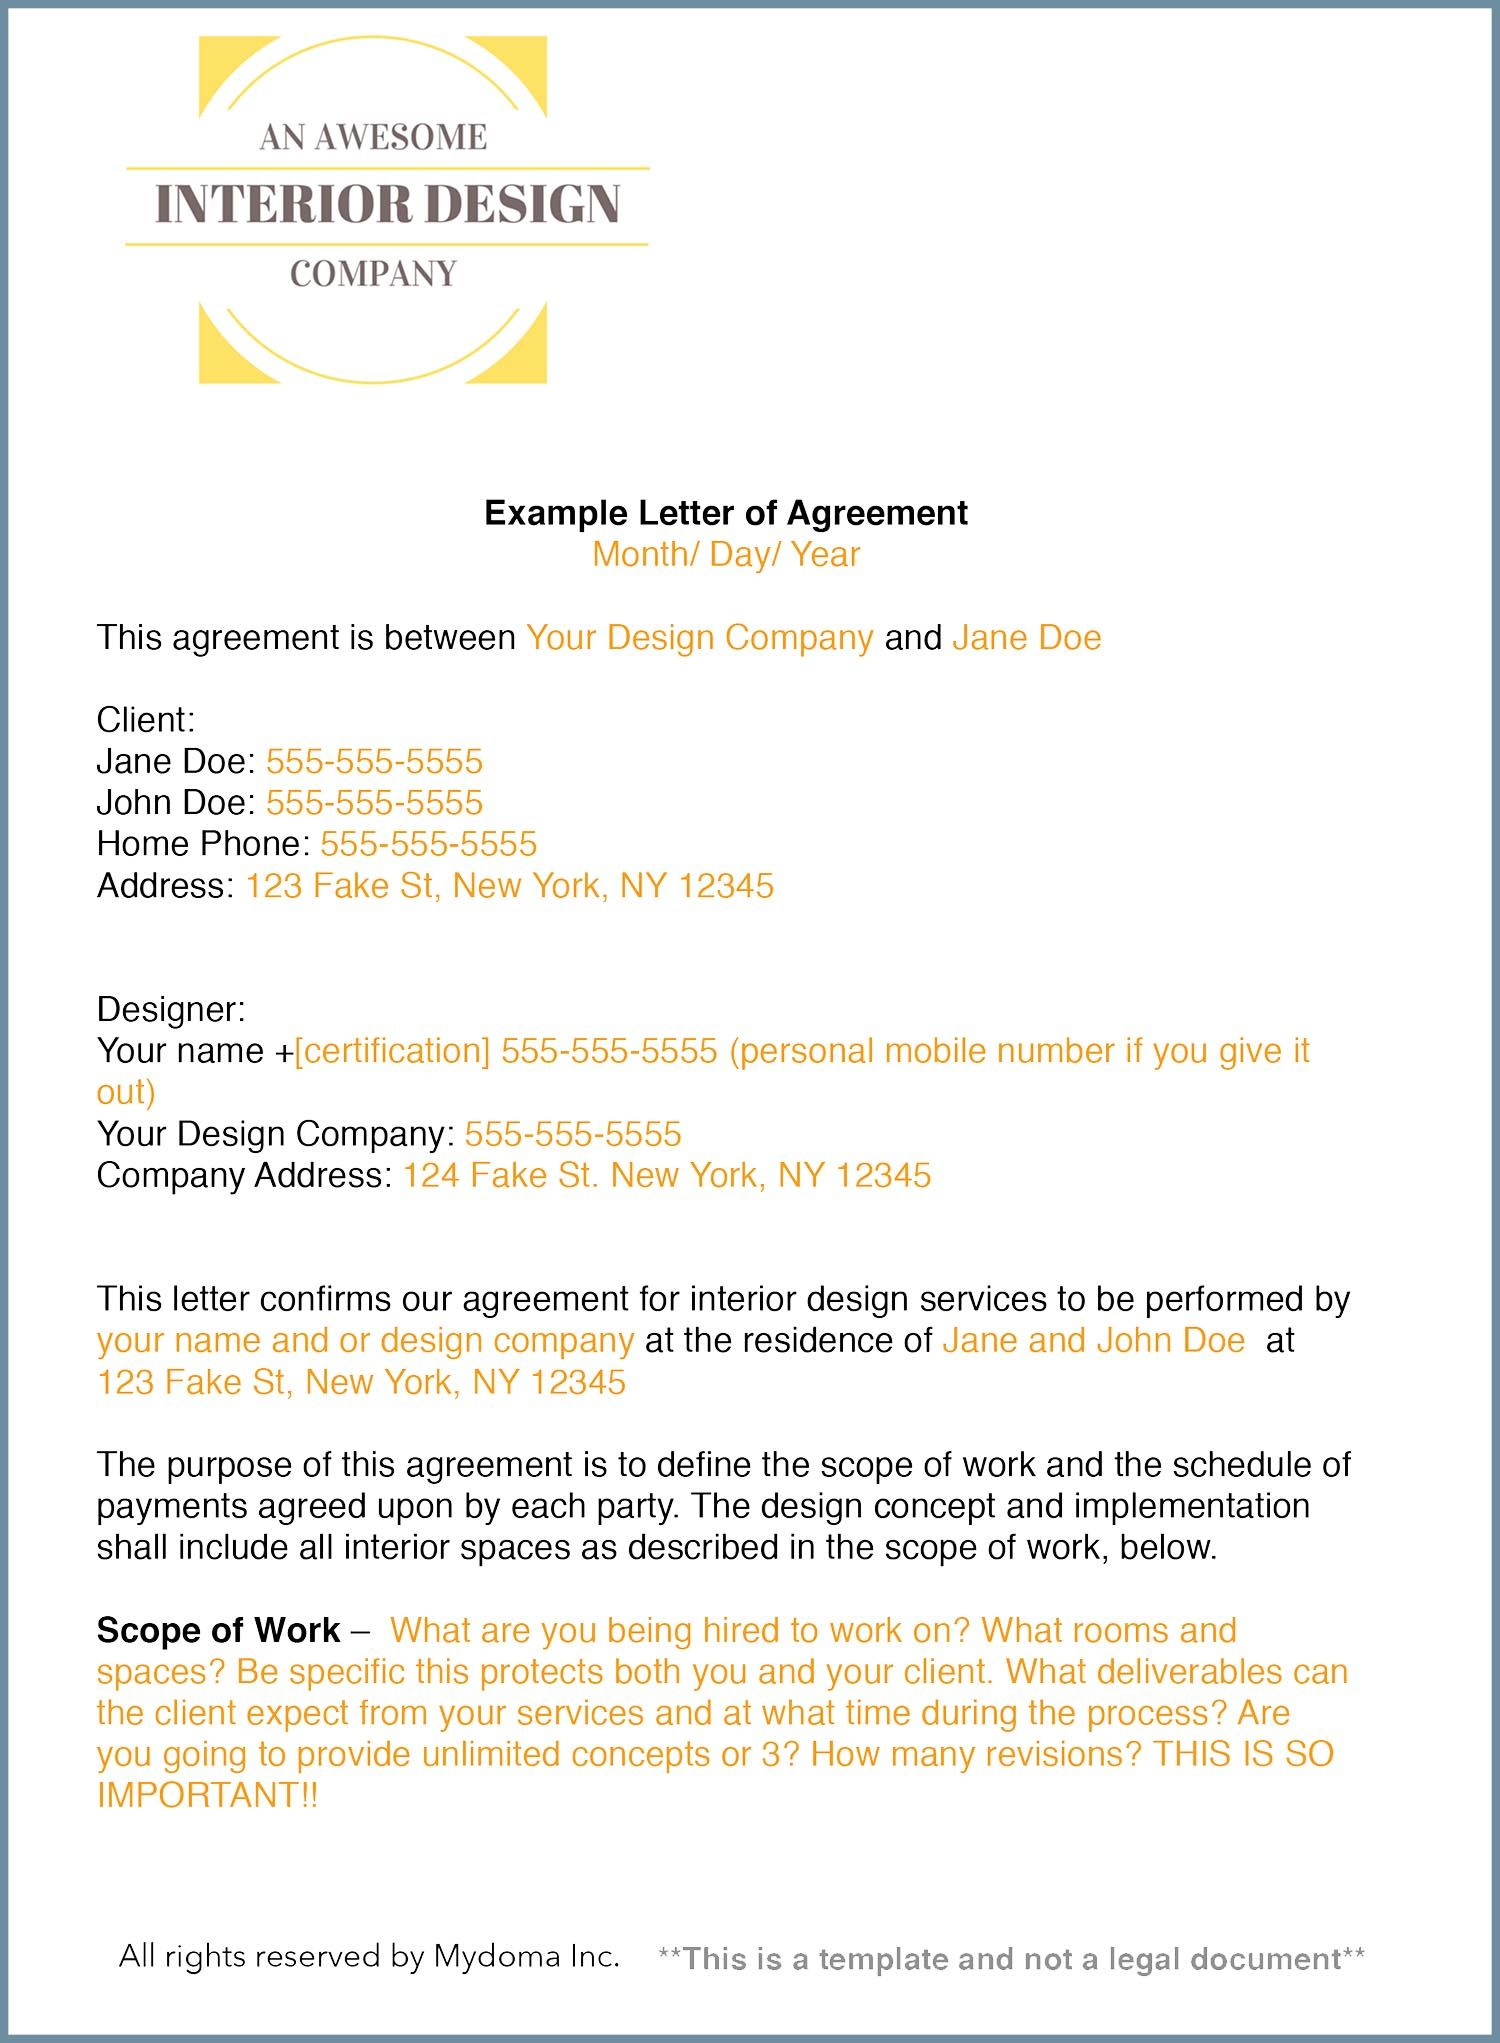 Interior Design Contract Template Letter Of Agreement Career Resources Companies Designing